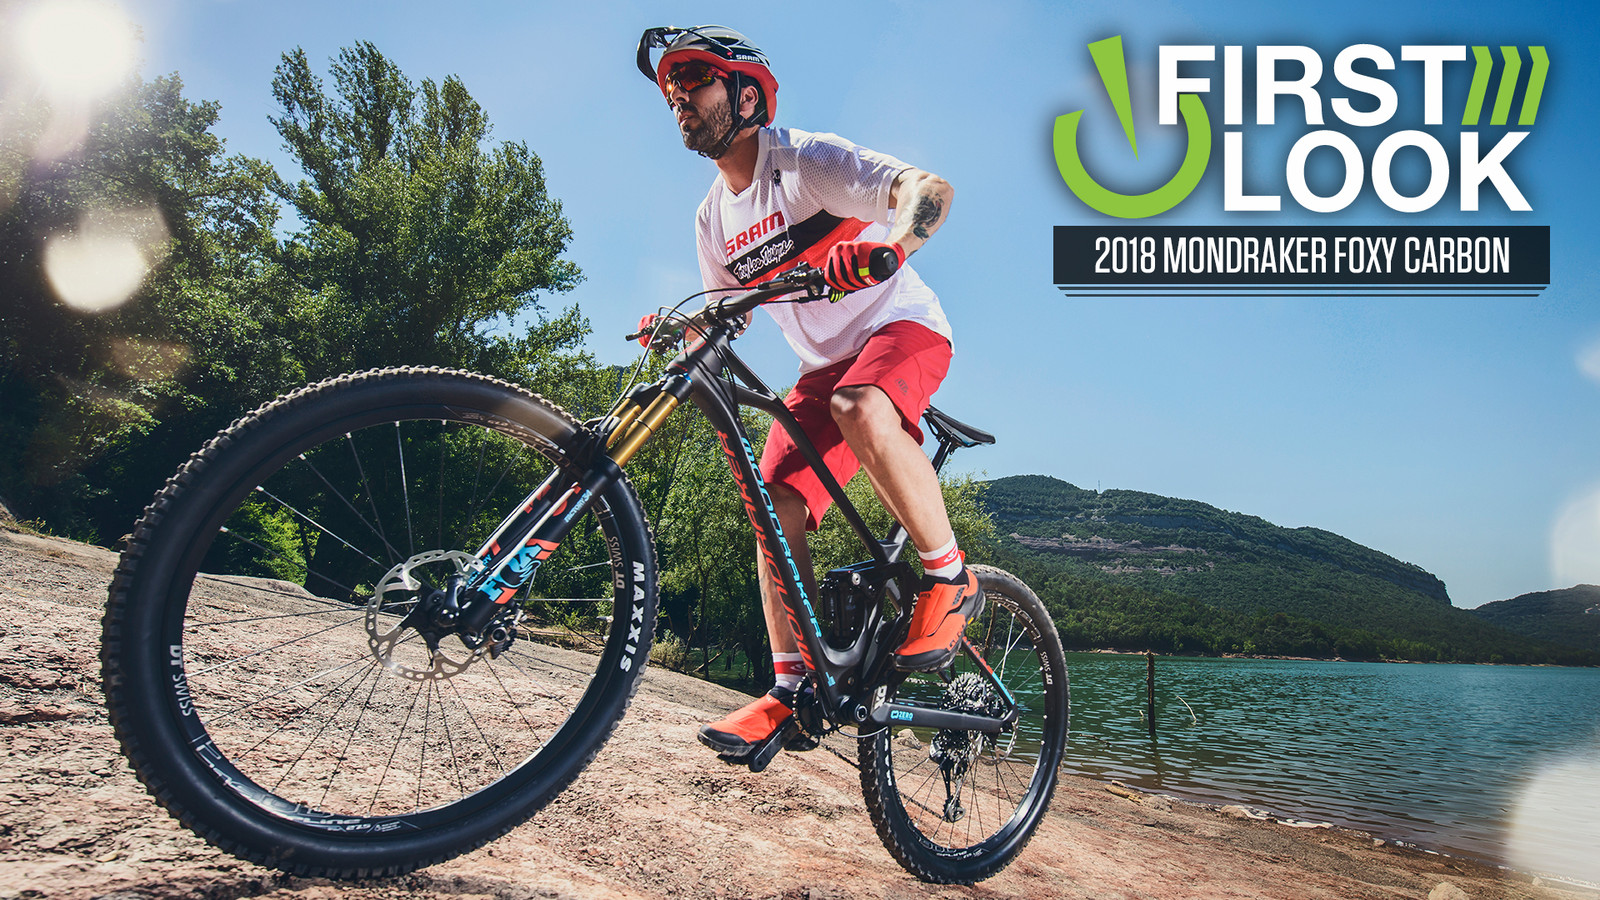 Mondraker Introduces the All-New 2018 Foxy Carbon